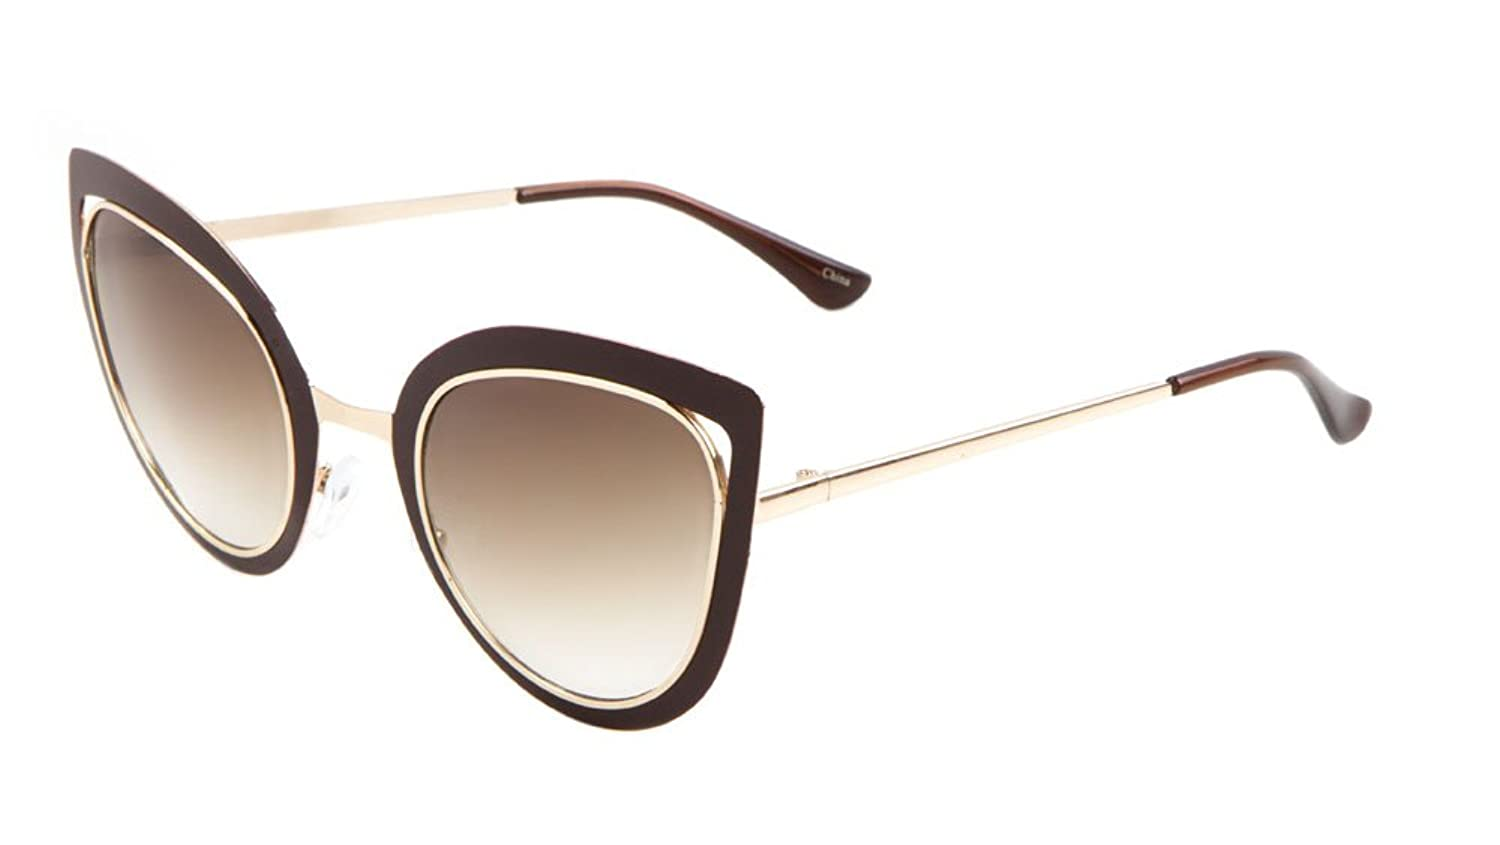 Sunglasses Luxe. Metal Cat Eye Sunglasses. (BROWN GOLD SMOKE)